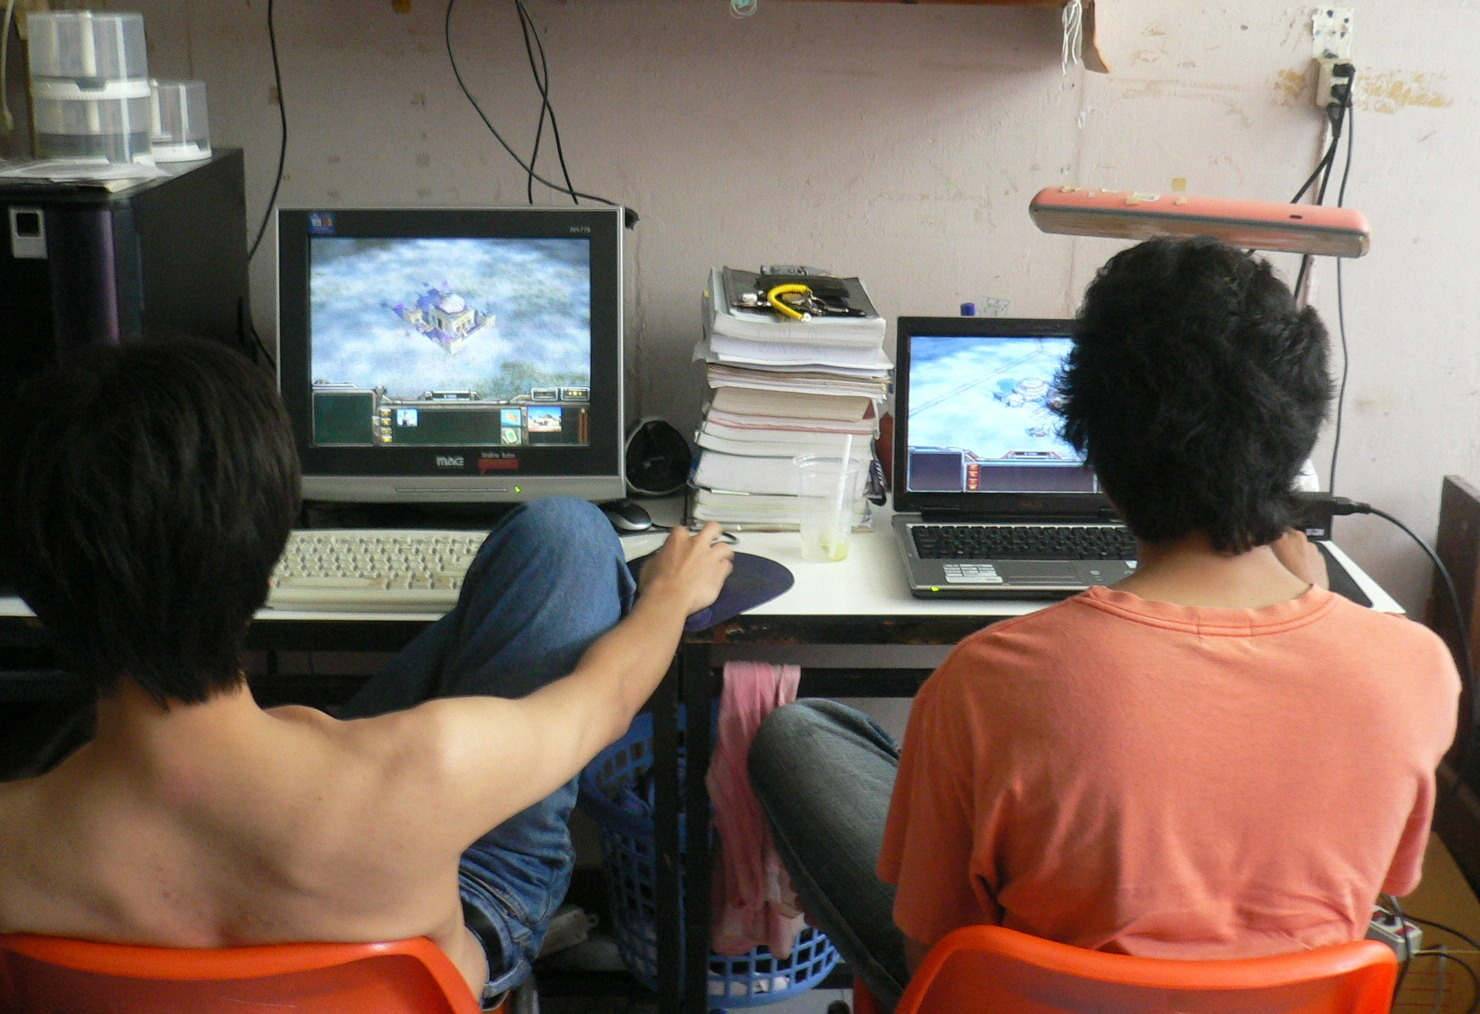 how to speed up internet: test for the gamers